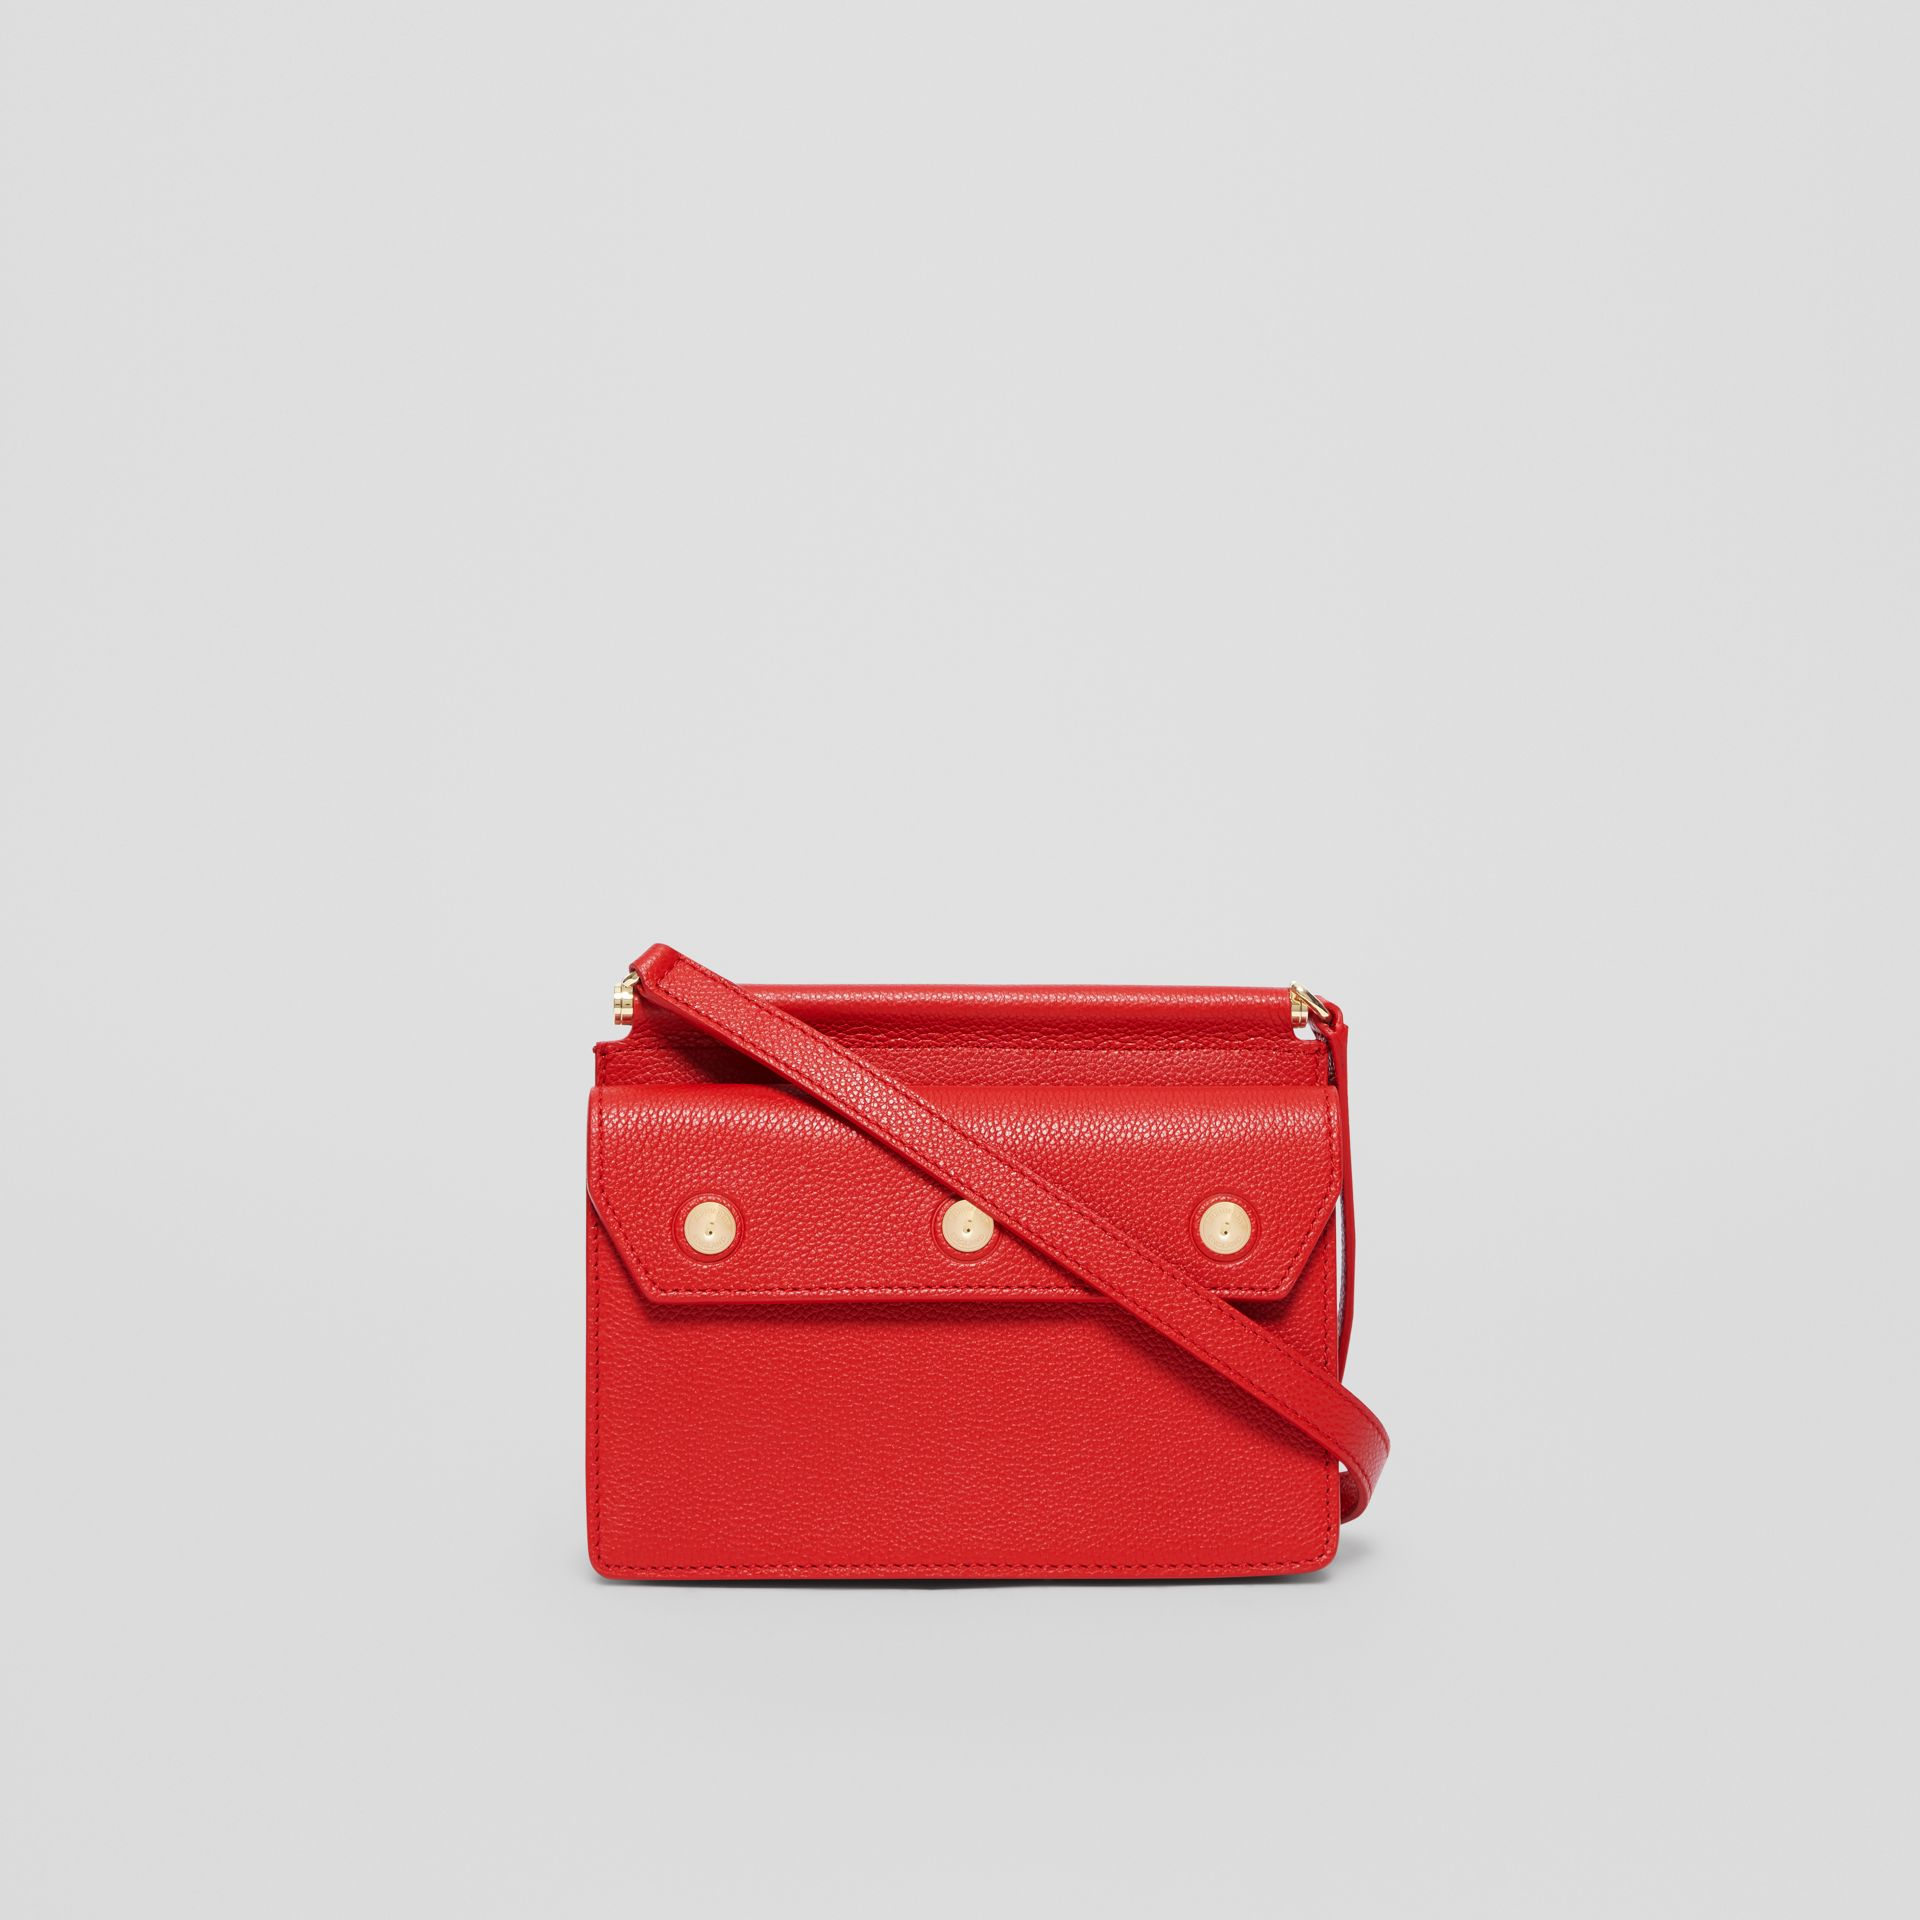 Mini Leather Title Bag with Pocket Detail in Bright Military Red - Women | Burberry Singapore - gallery image 7